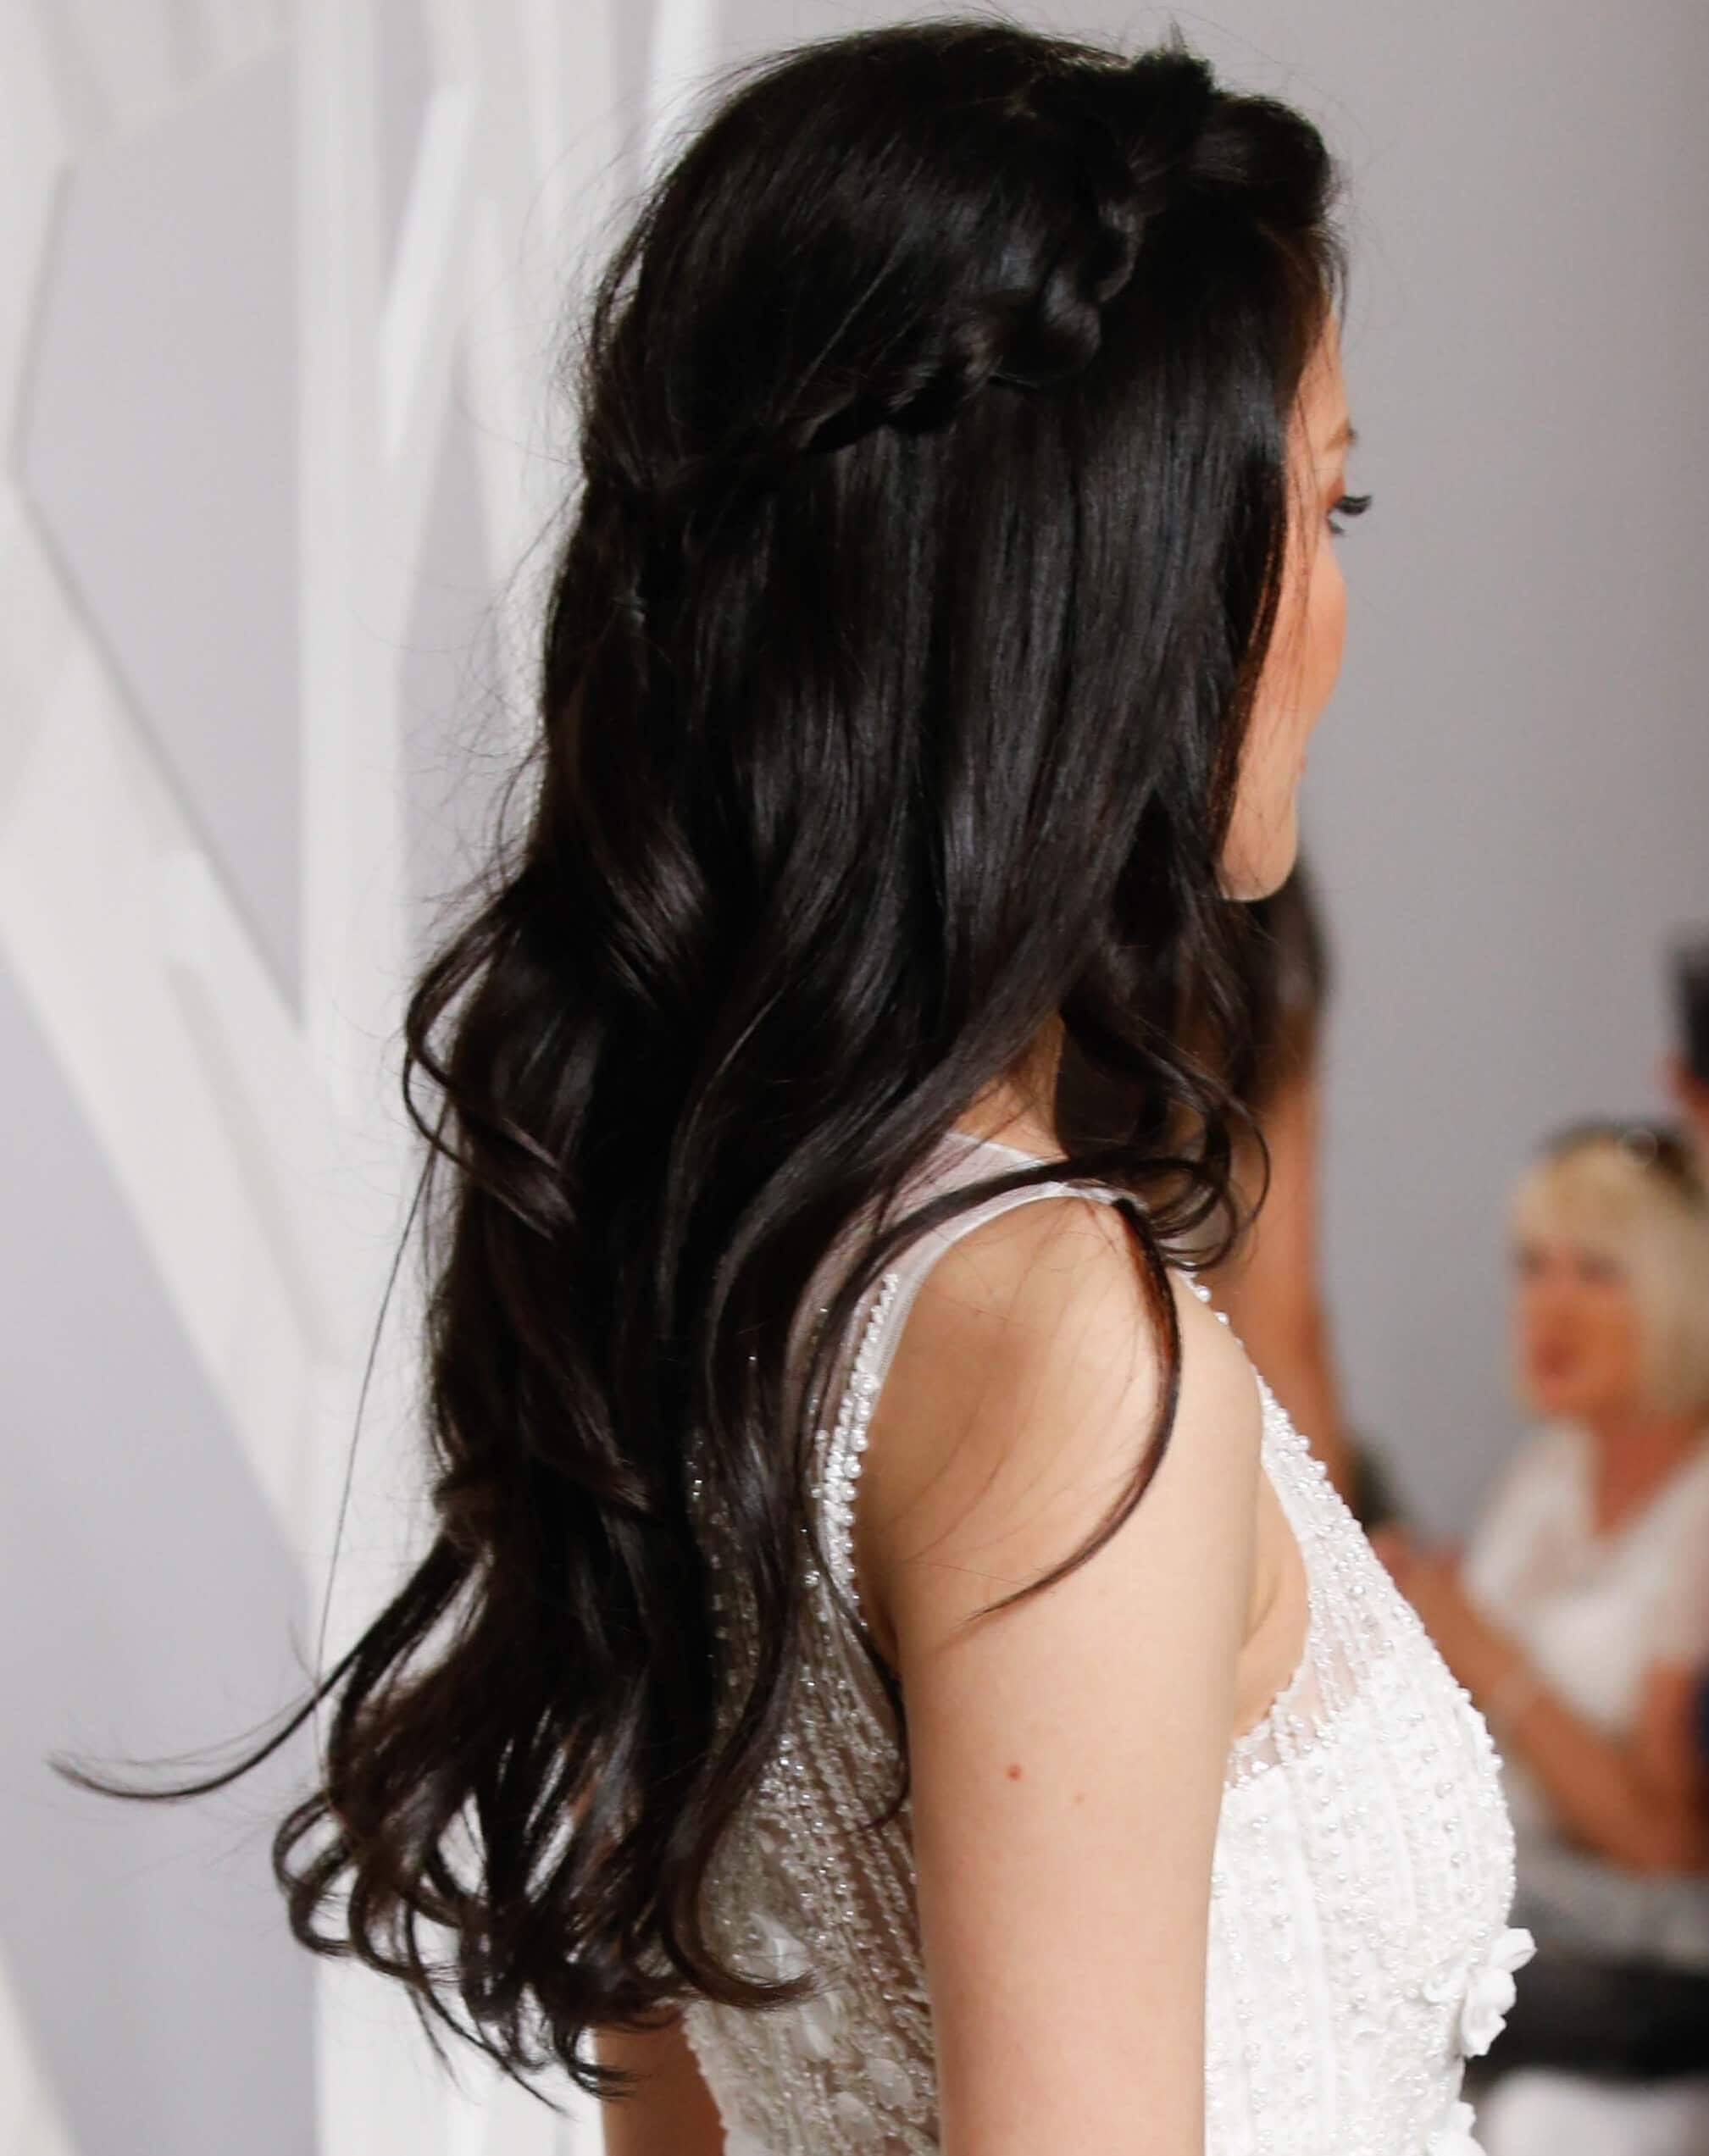 back view of a woman's hair with long dark waves